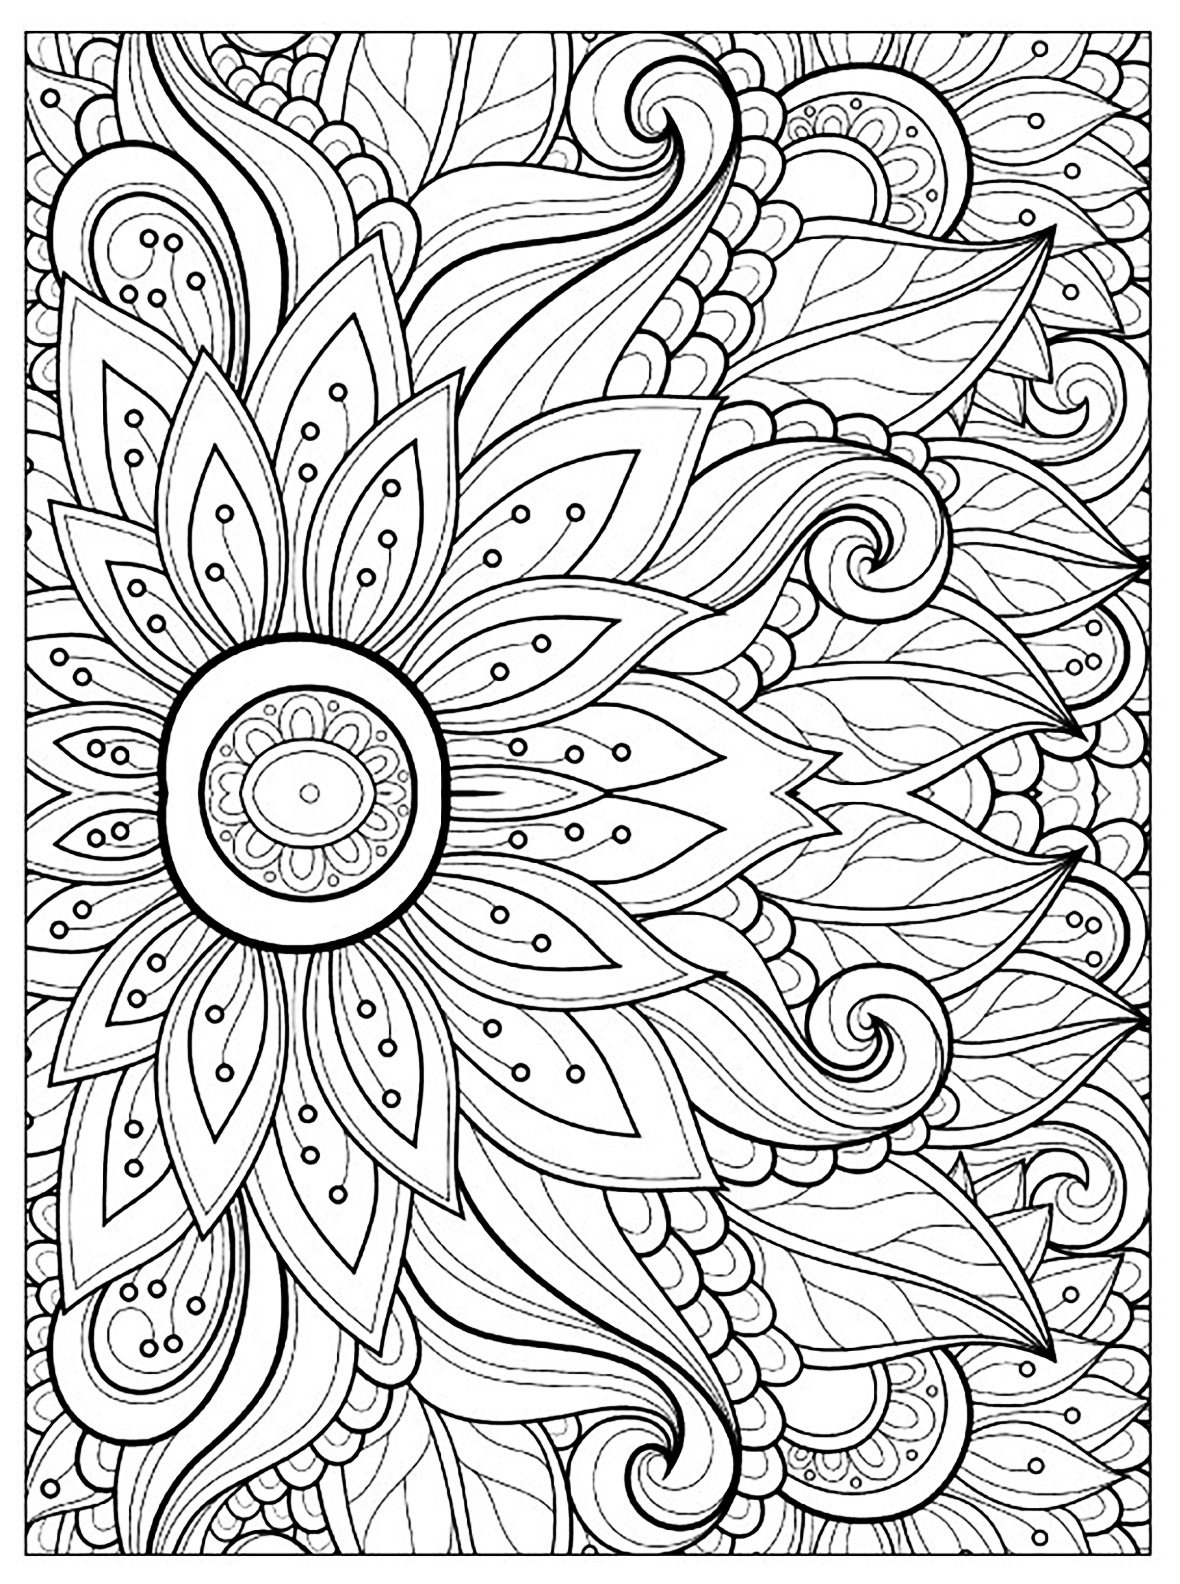 outline pictures flowers coloring pages for kids | Flowers to download for free - Flowers Kids Coloring Pages